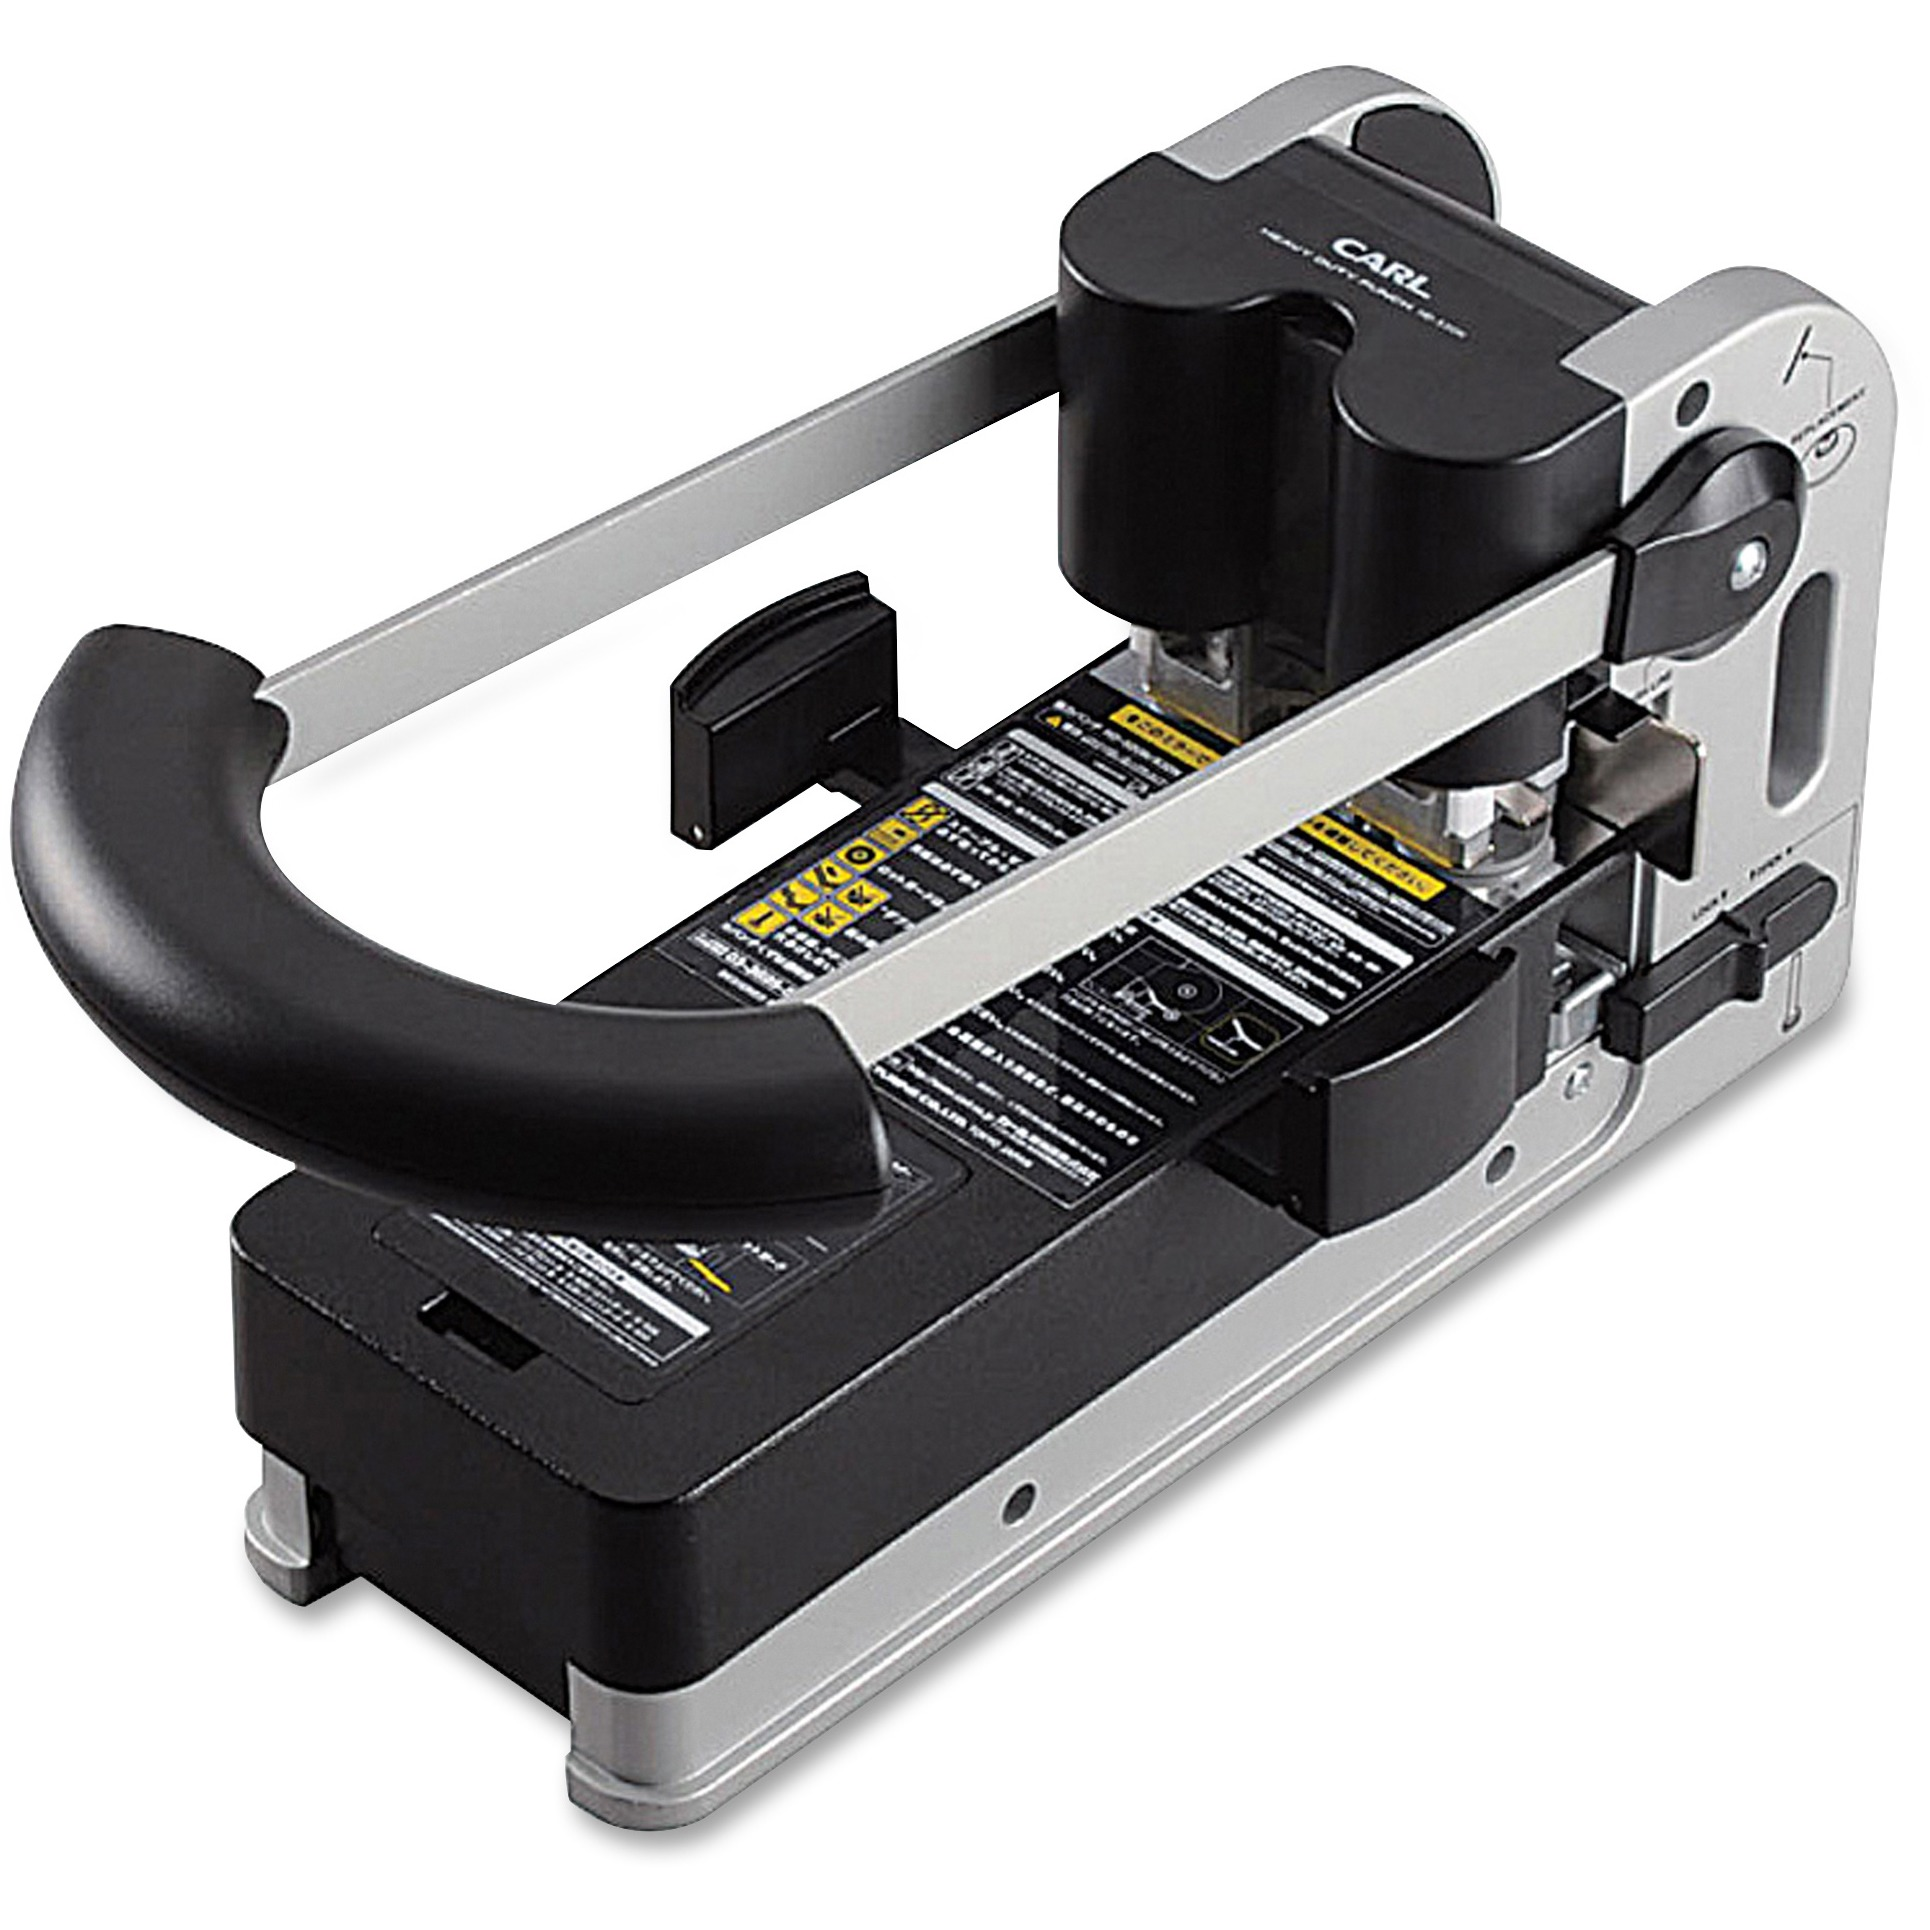 Carl Mfg Extra Heavy-Duty 2-Hole Punch